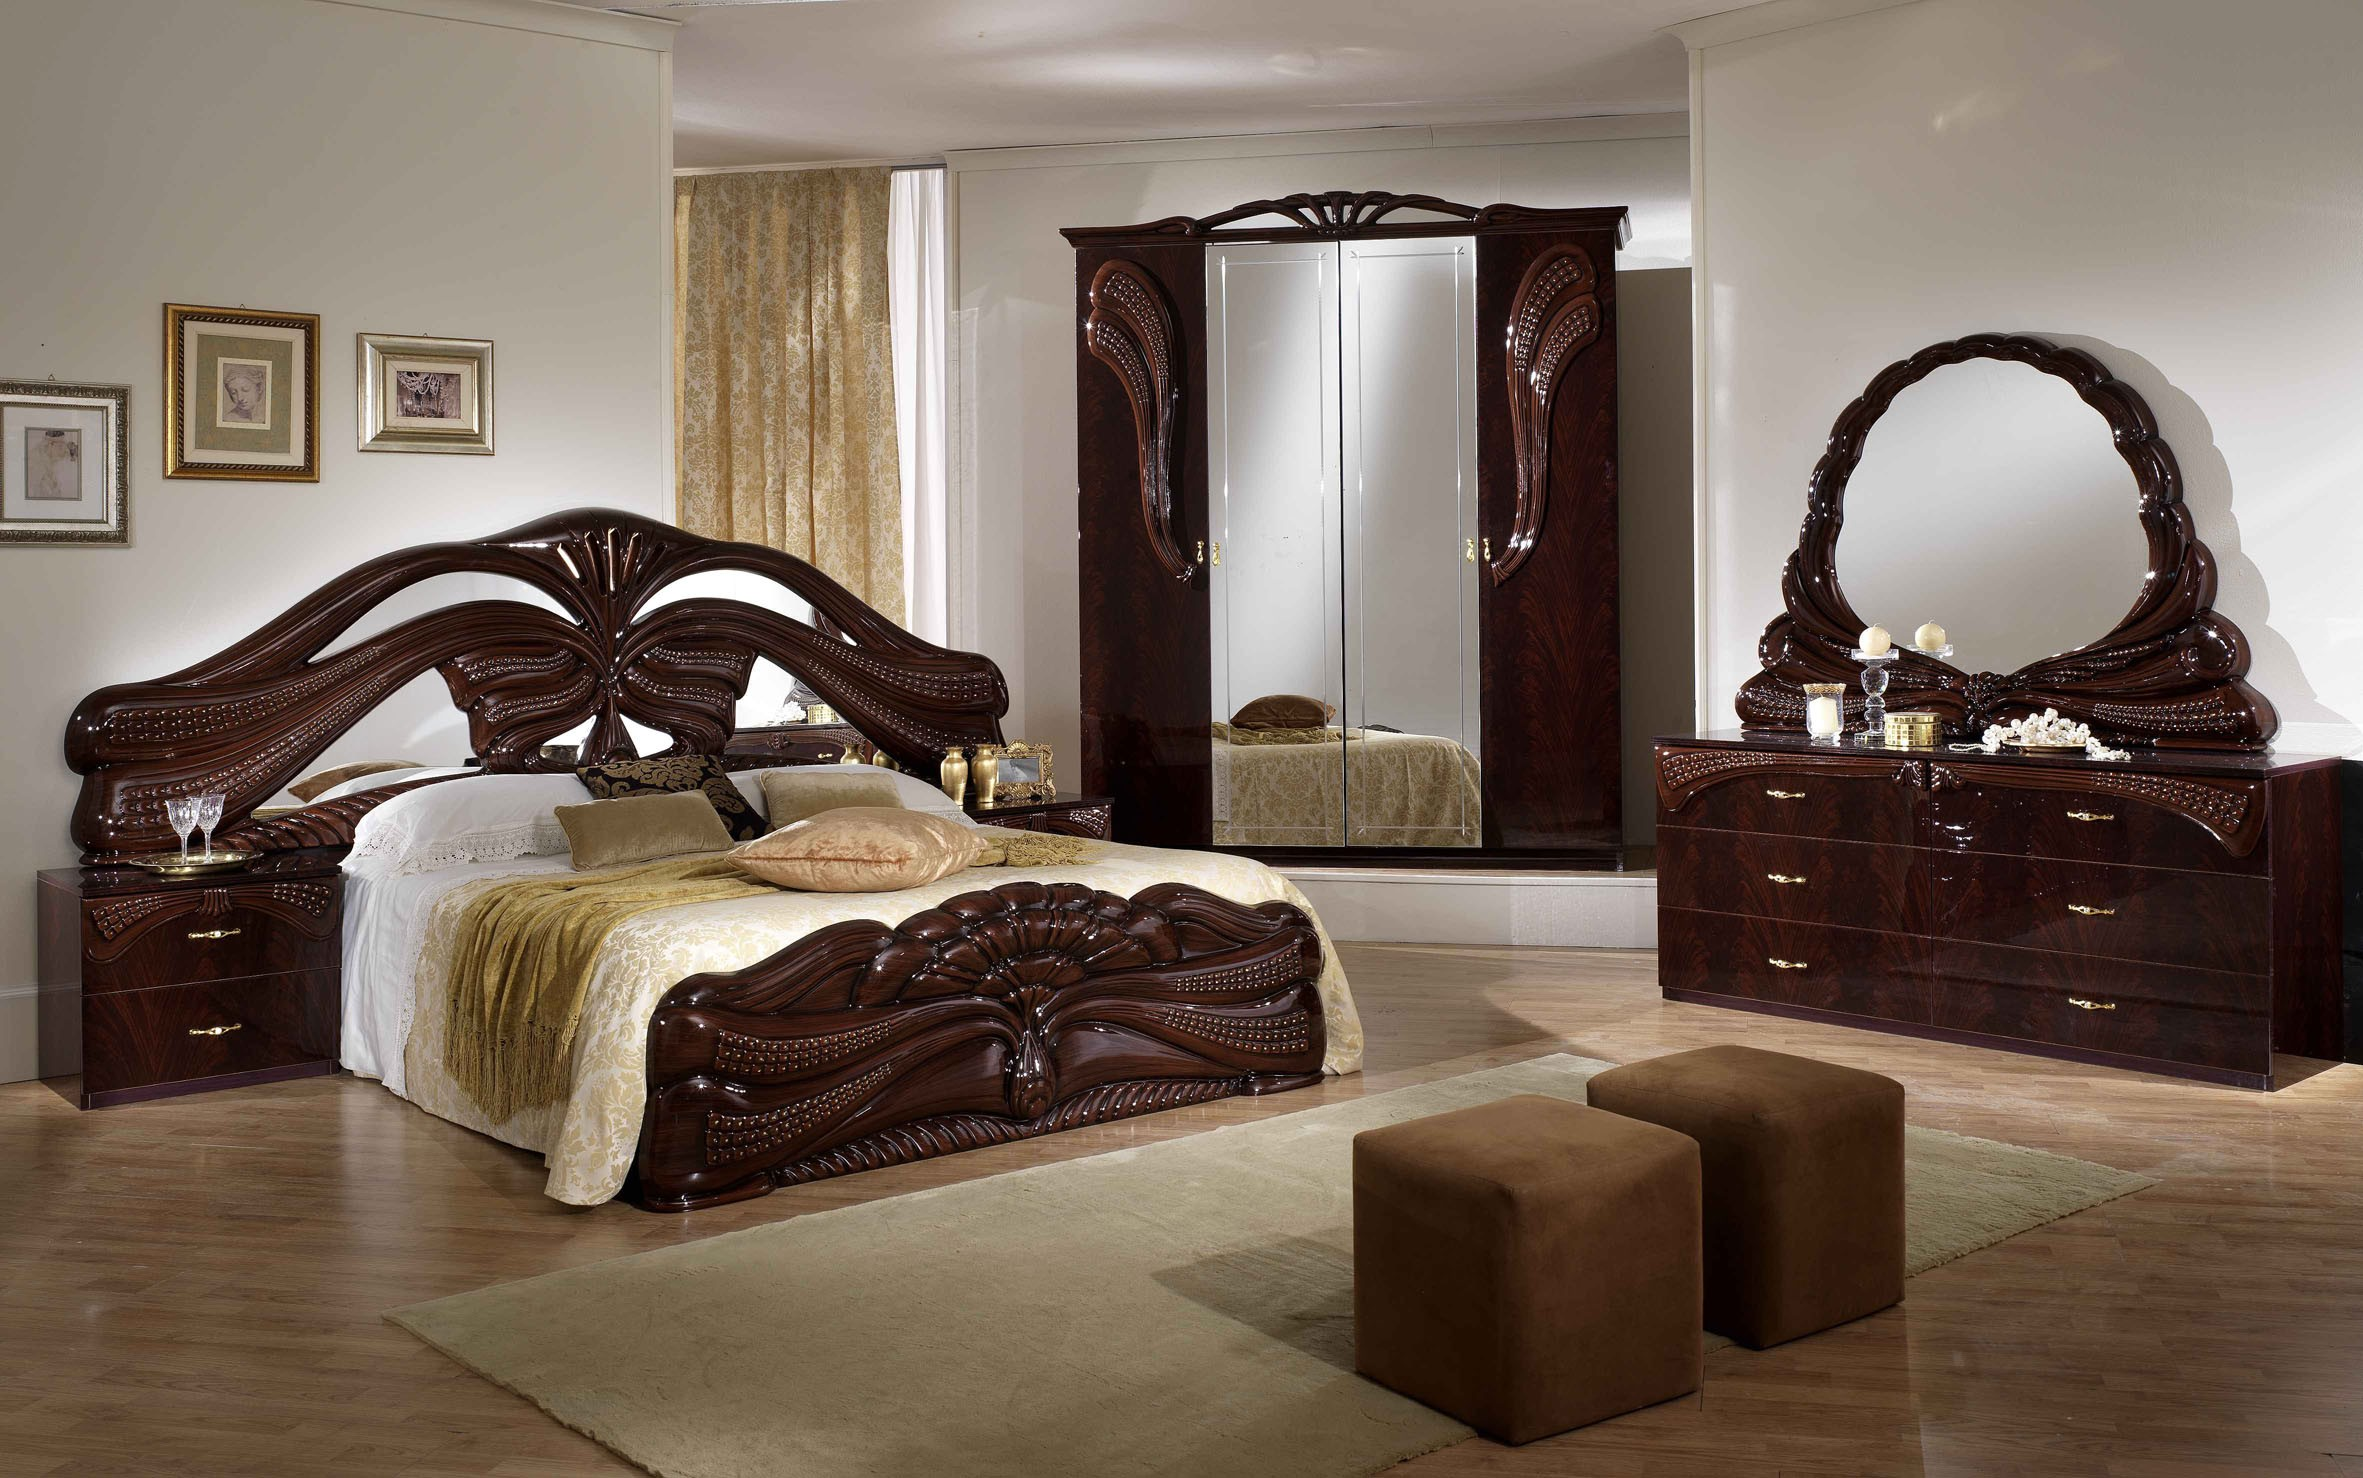 decoration chambre baroque moderne. Black Bedroom Furniture Sets. Home Design Ideas